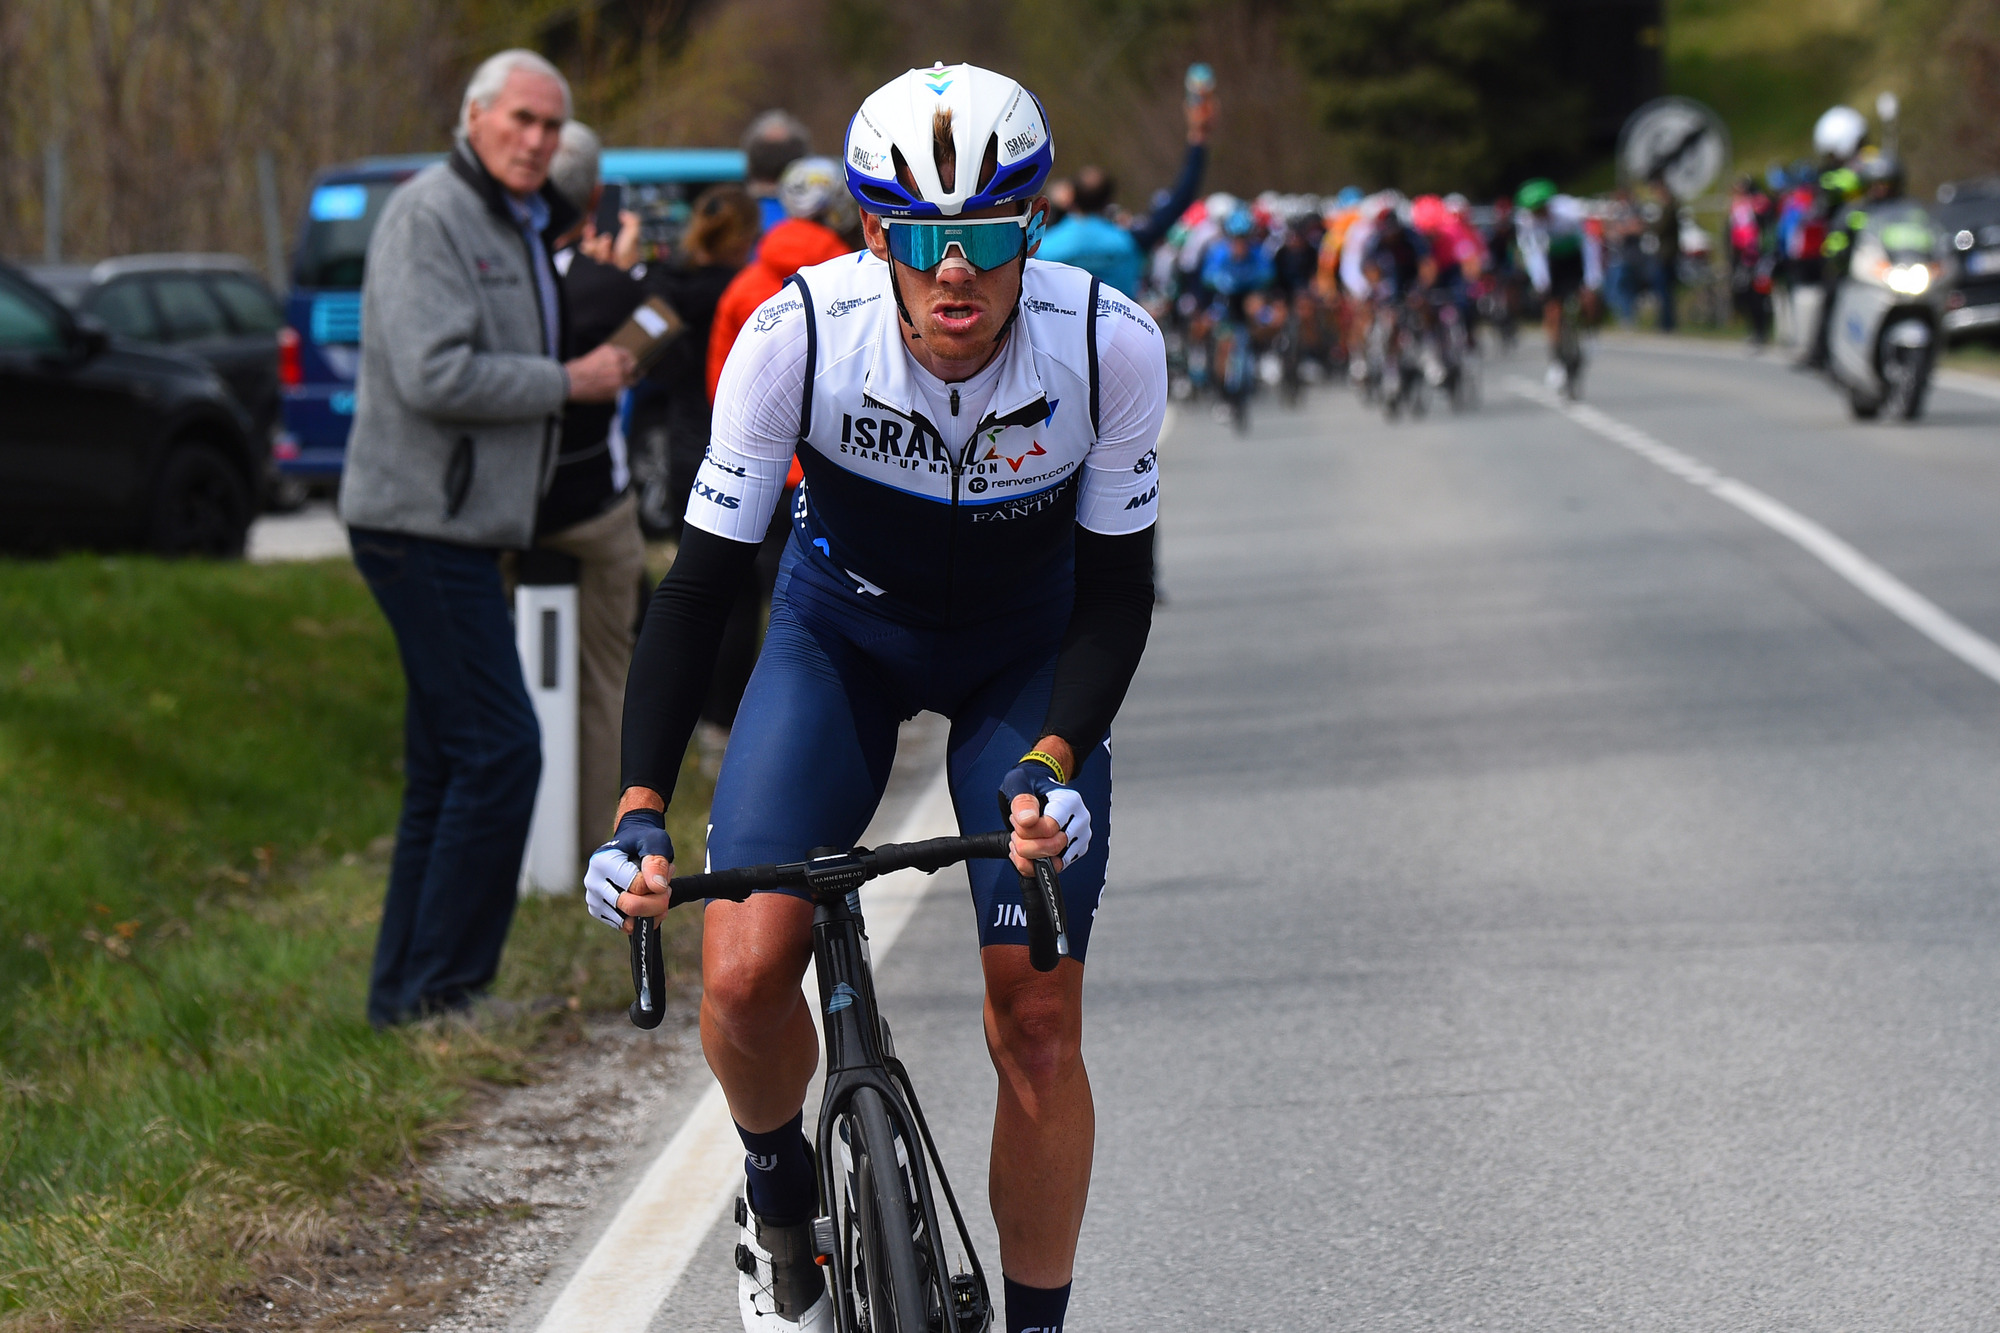 Alessandro De Marchi (Israel Start-Up Nation) attacked early during the stage